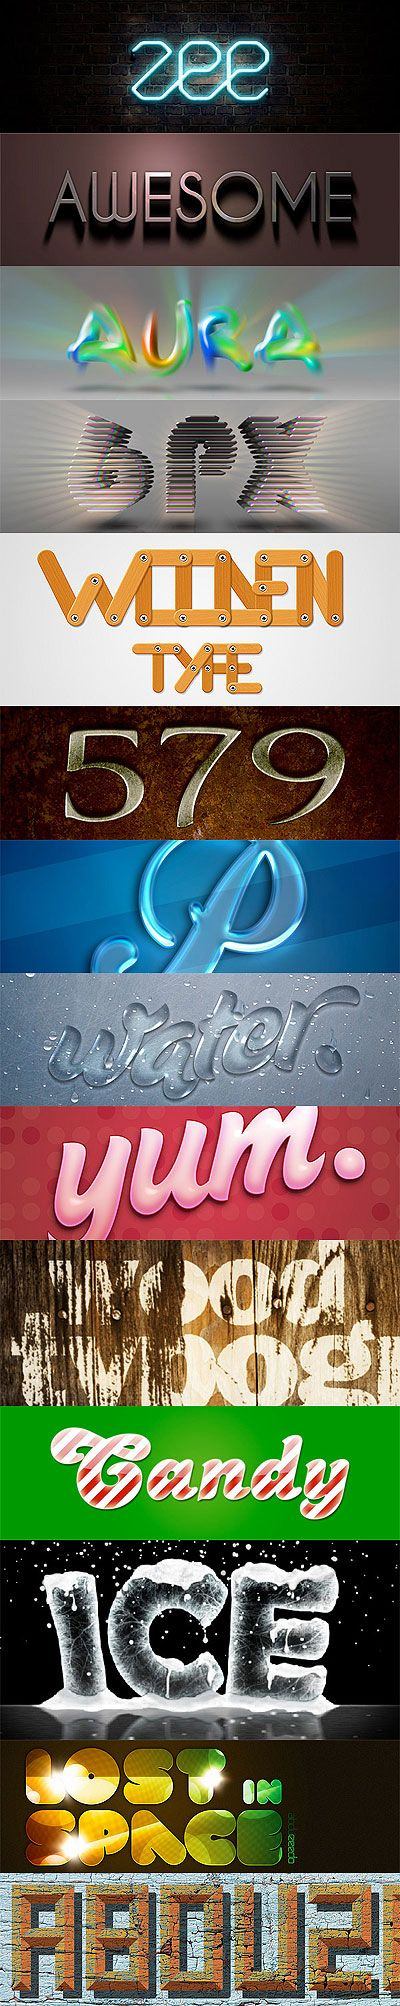 20 Eye Popping Photoshop Text Effects Tutorials. Article by Enrique Flouret. {photoshoproadmap}